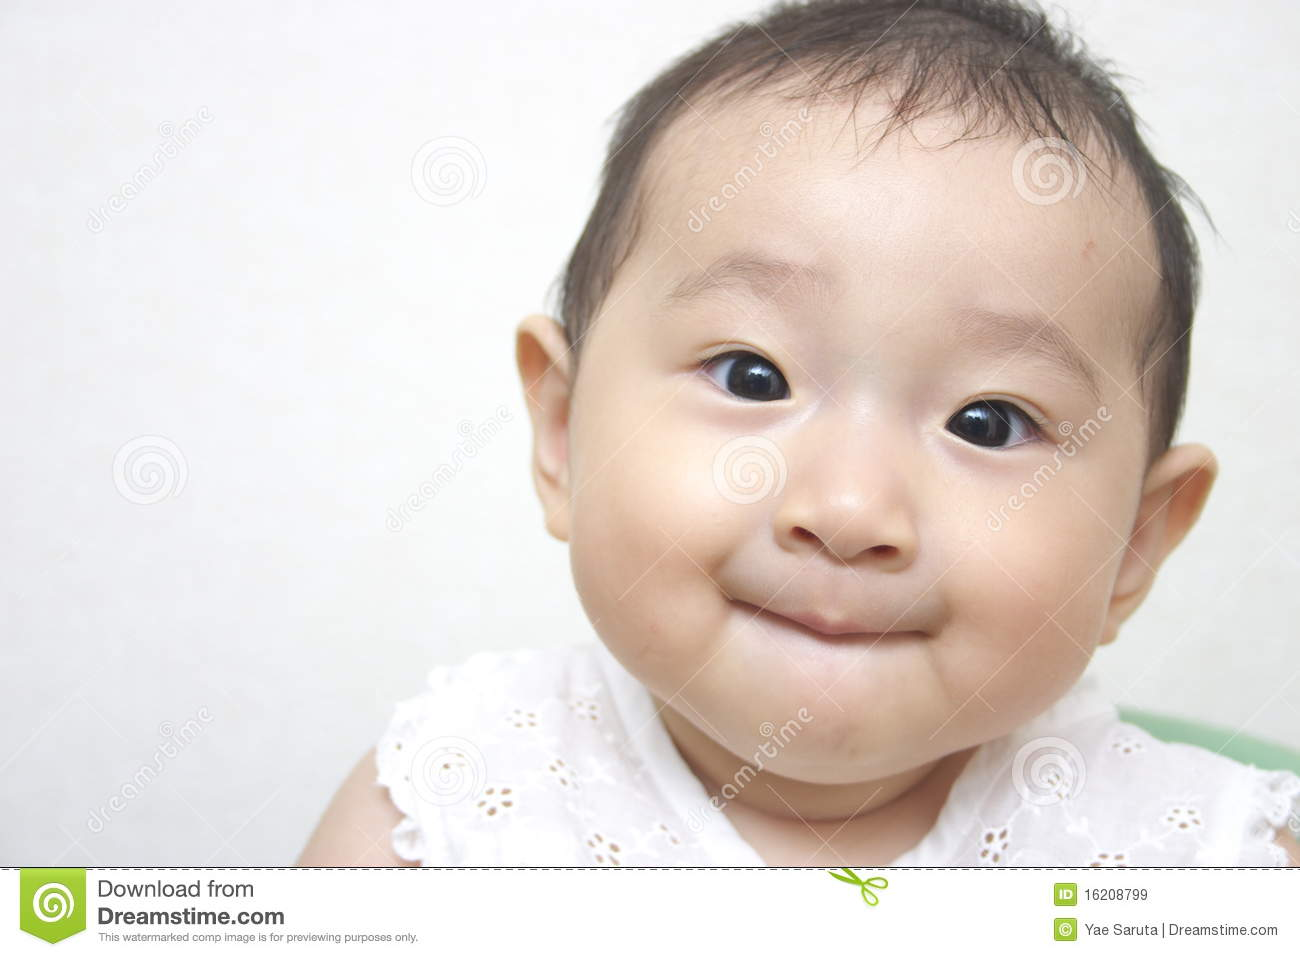 Japanese Baby Stock Image. Image Of Smile, Girl, Baby